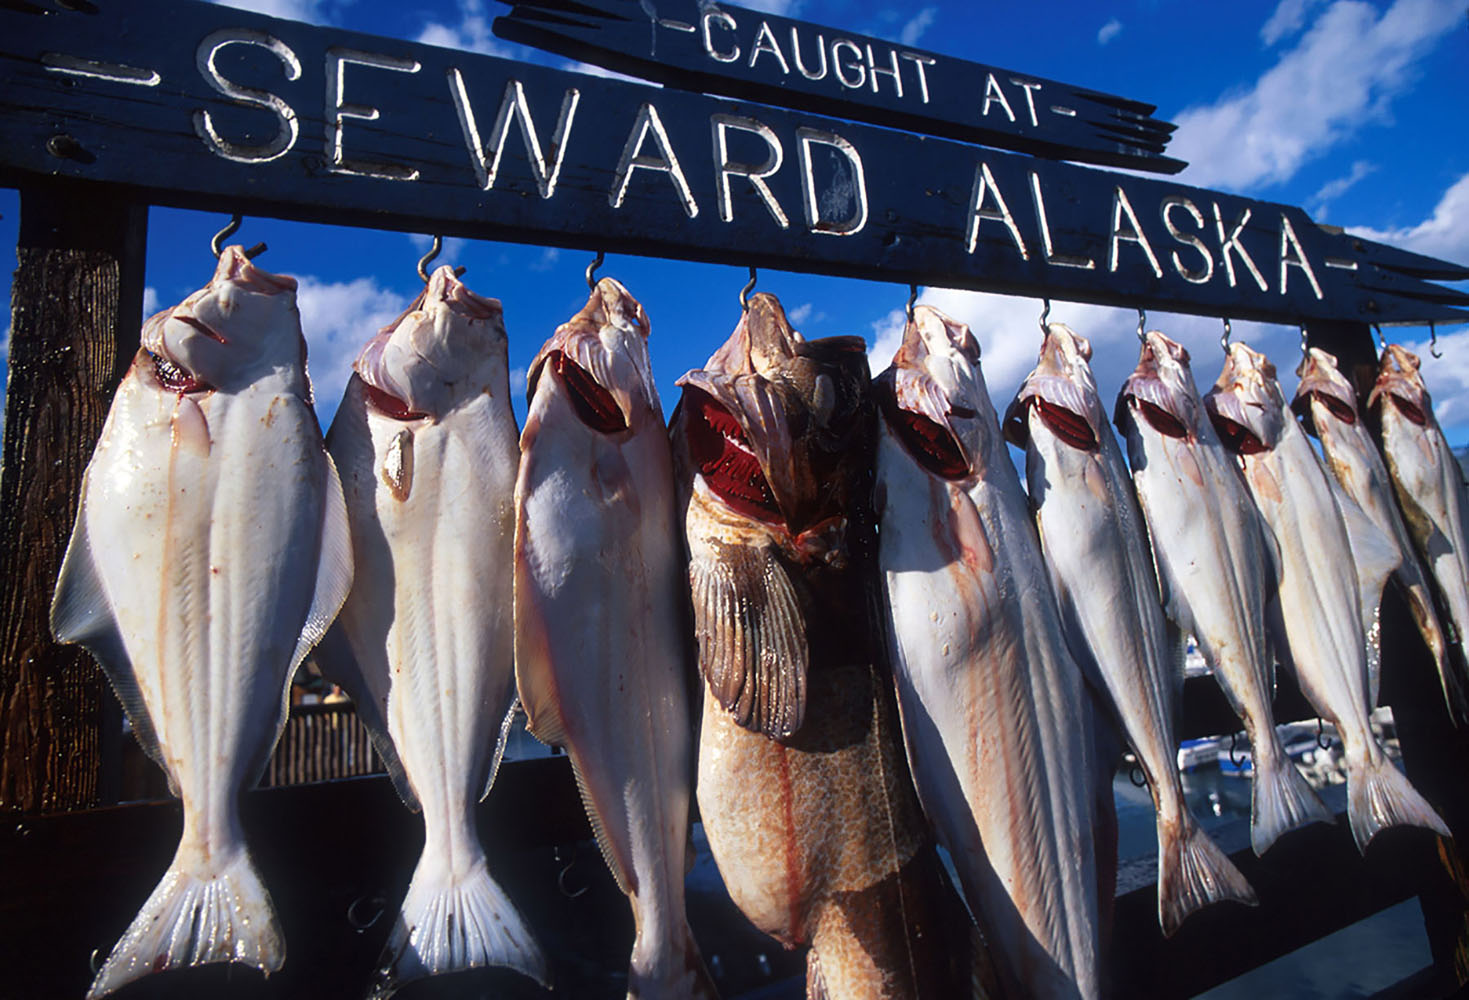 Fish hung for pictures after being caught in the waters of Seward, Alaska.